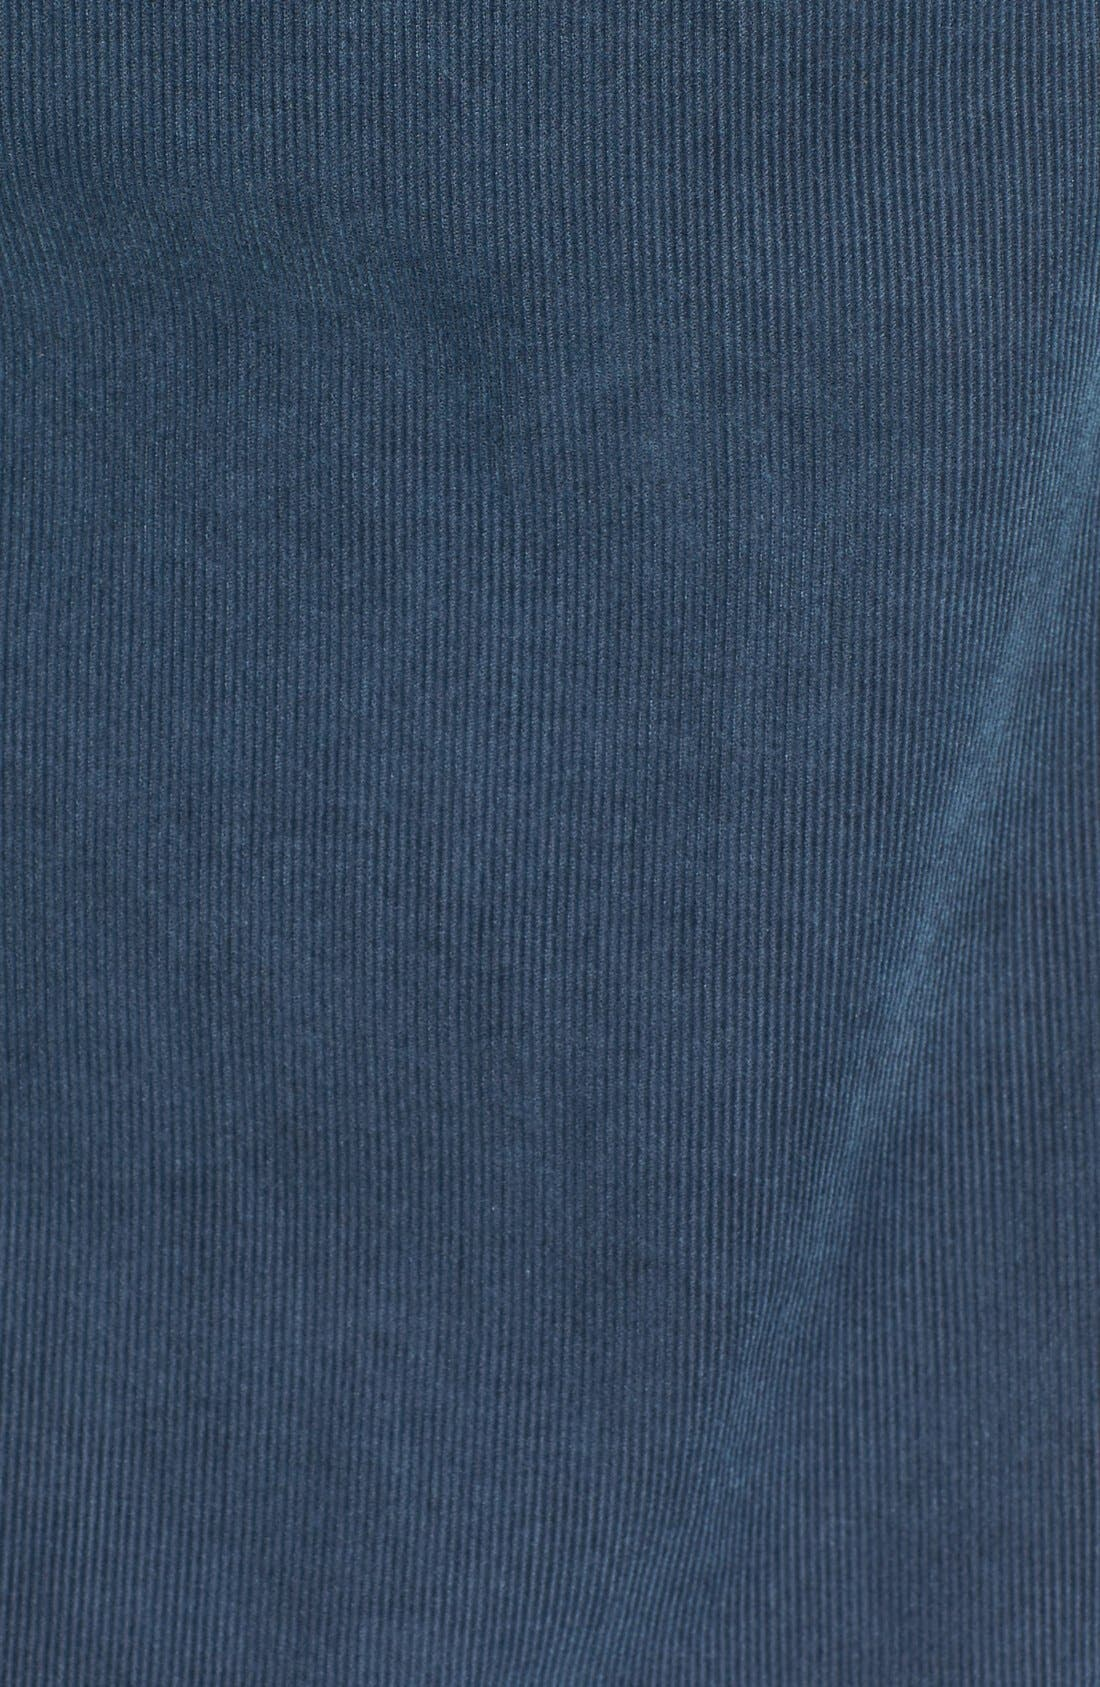 'Jaymes' Pigment Dyed Corduroy Shirt,                             Alternate thumbnail 20, color,